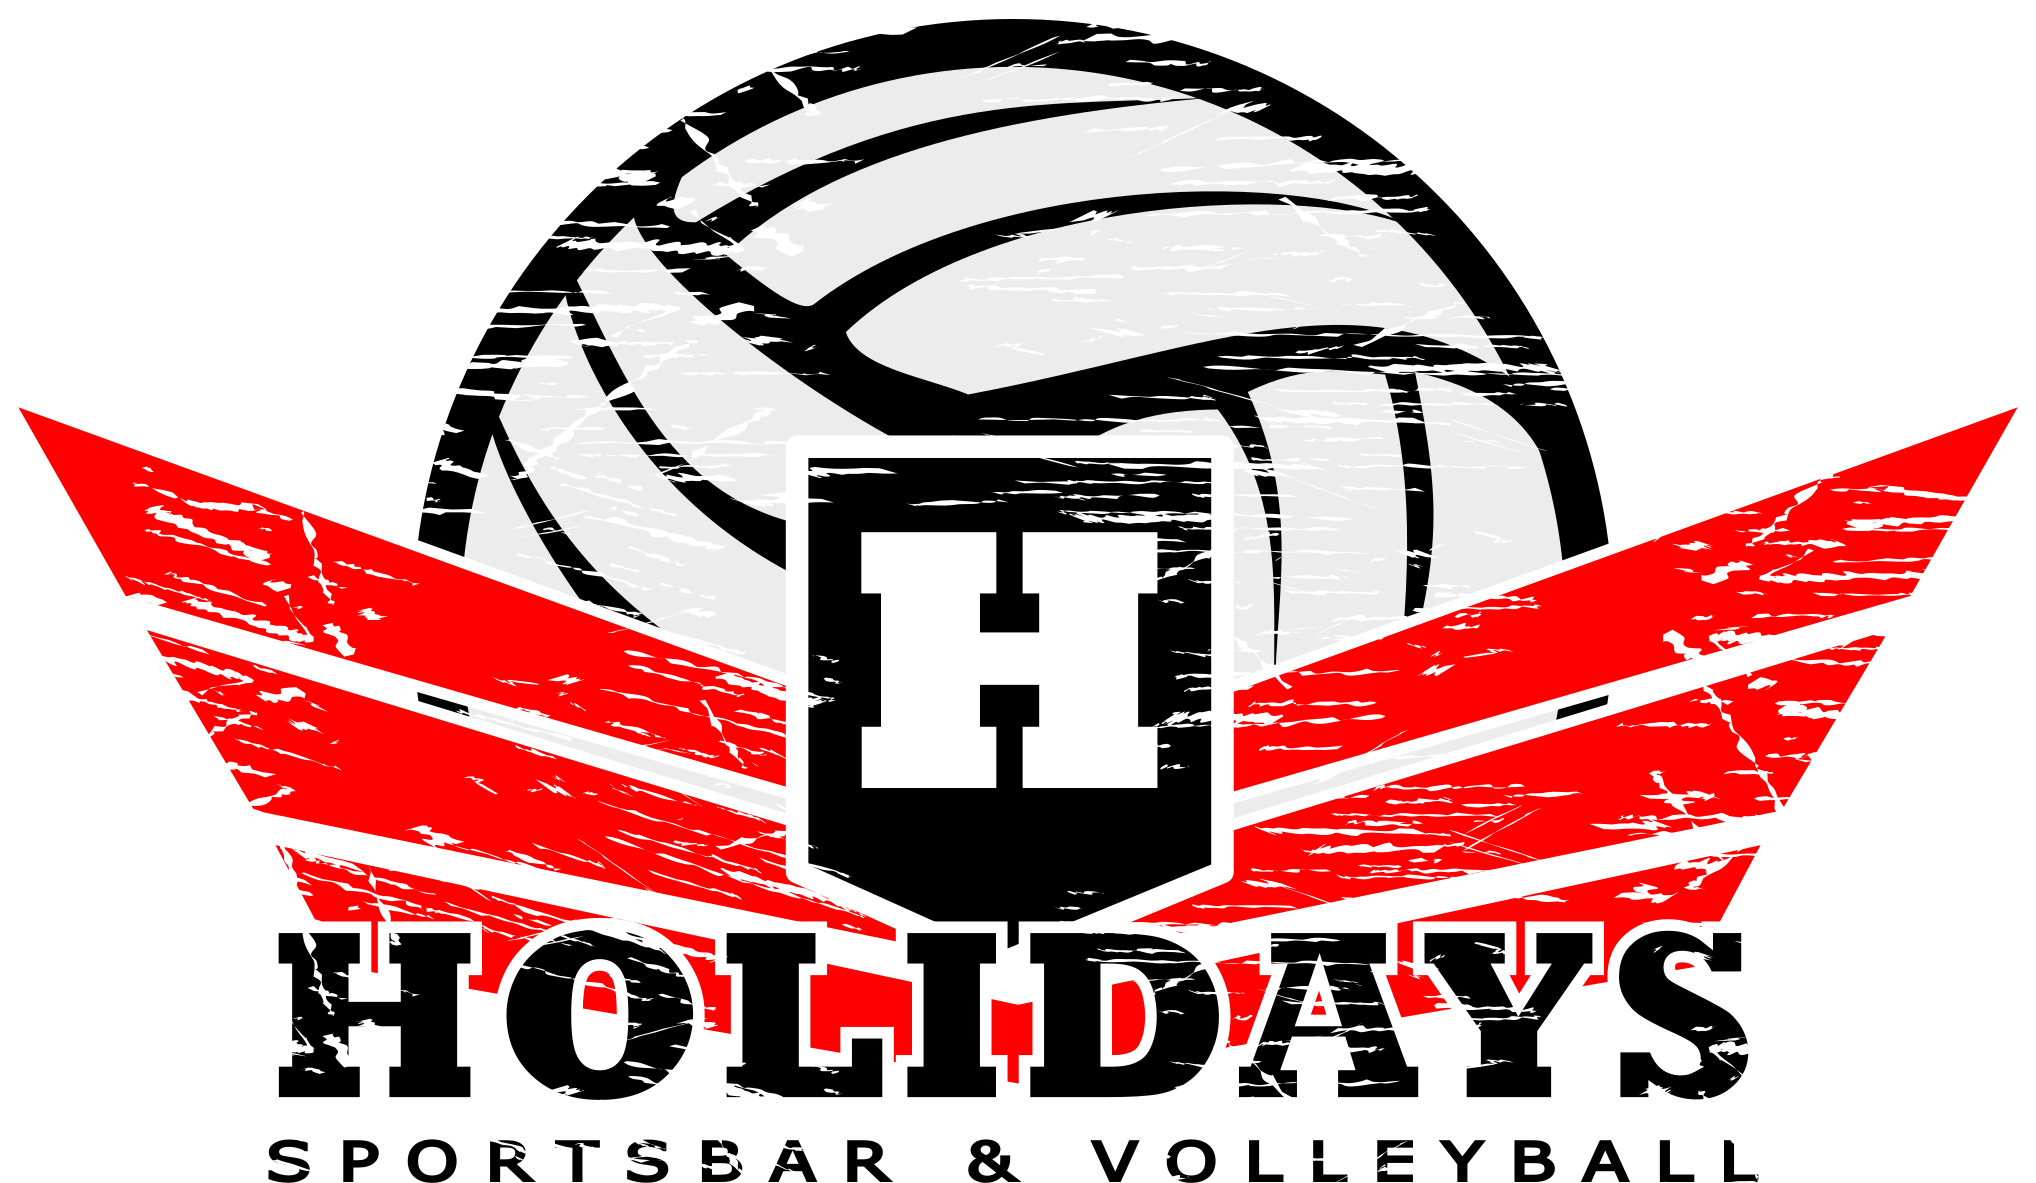 HOLIDAYS Sports Bar and Volleyball